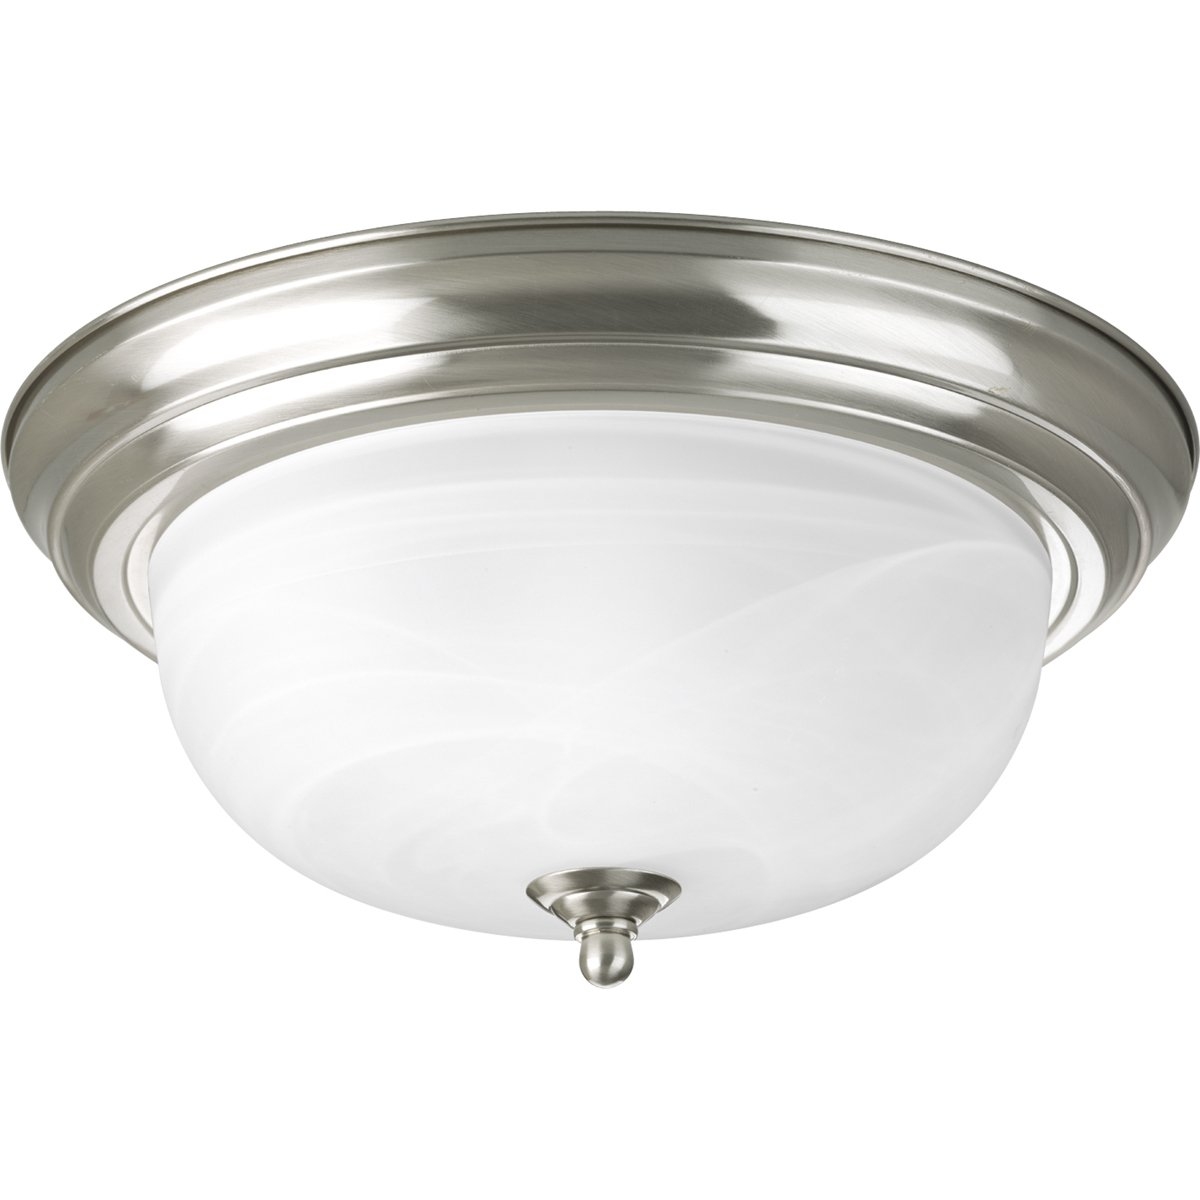 progress lighting p3925 09 two light flush mount brushed nickel finish with etched alabaster glass close to ceiling light fixtures amazoncom ceiling domes with lighting